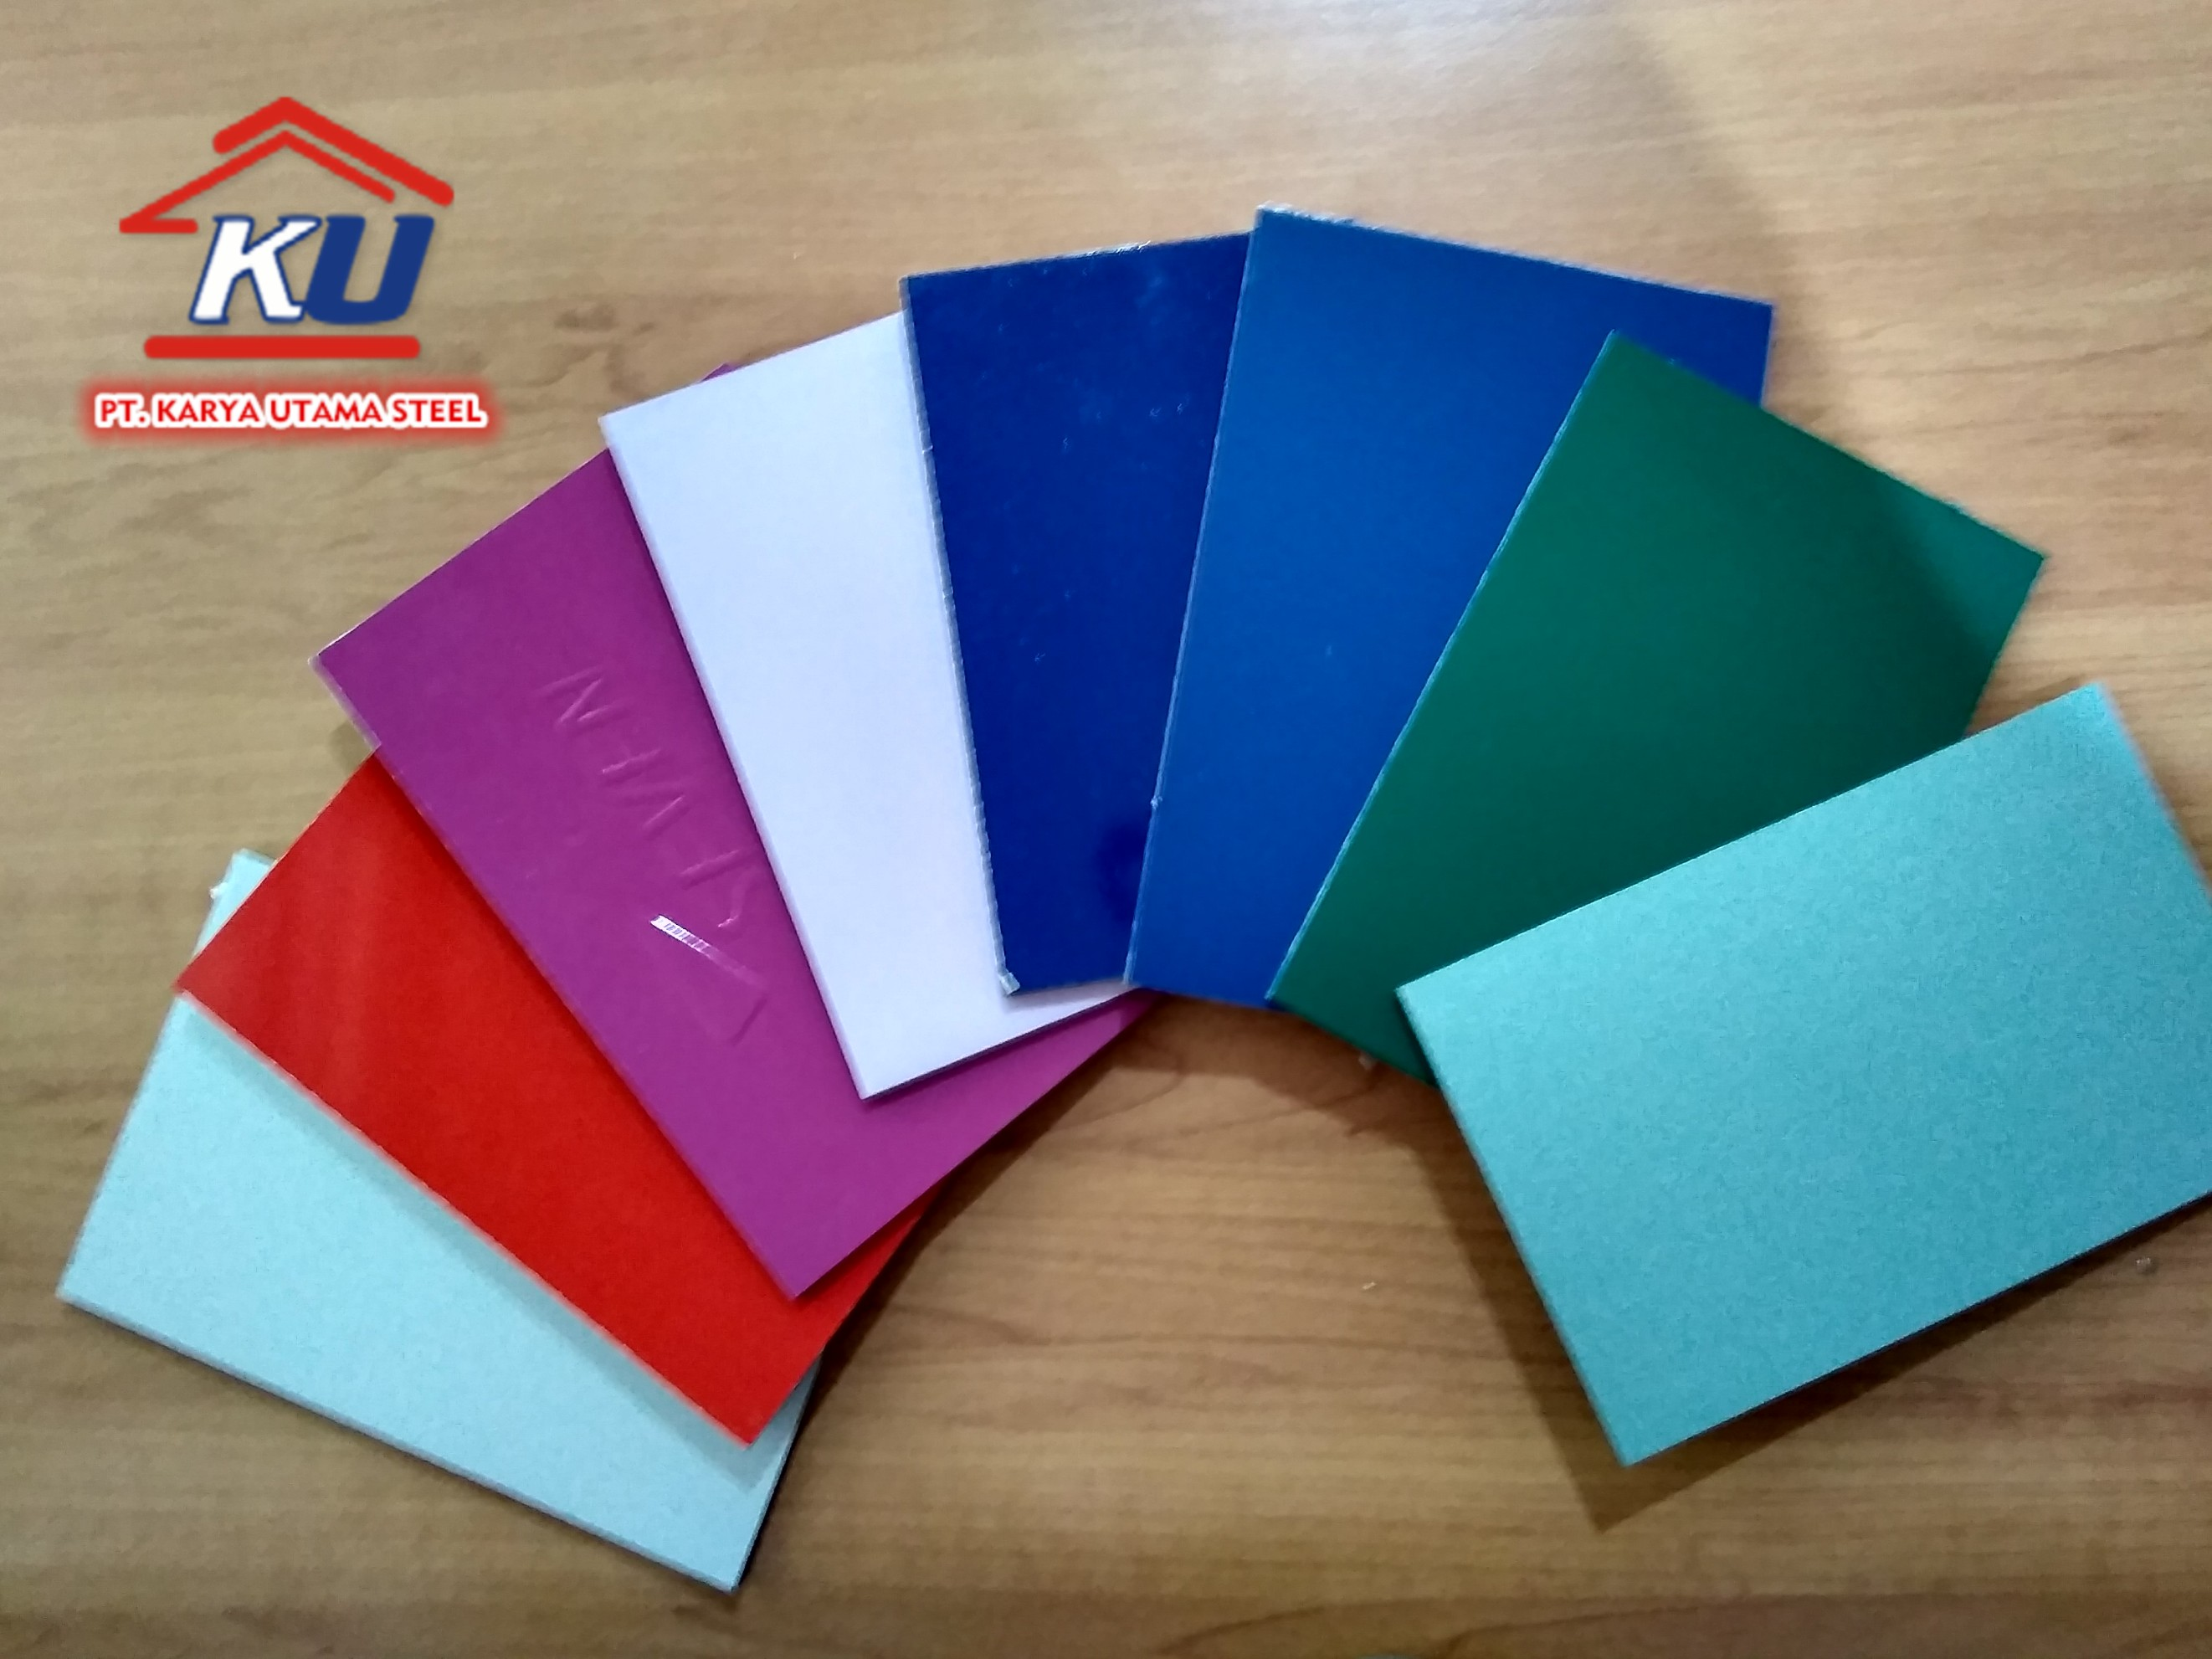 No Crack Aluminium Composite Panel ex Seven All Varian Warna